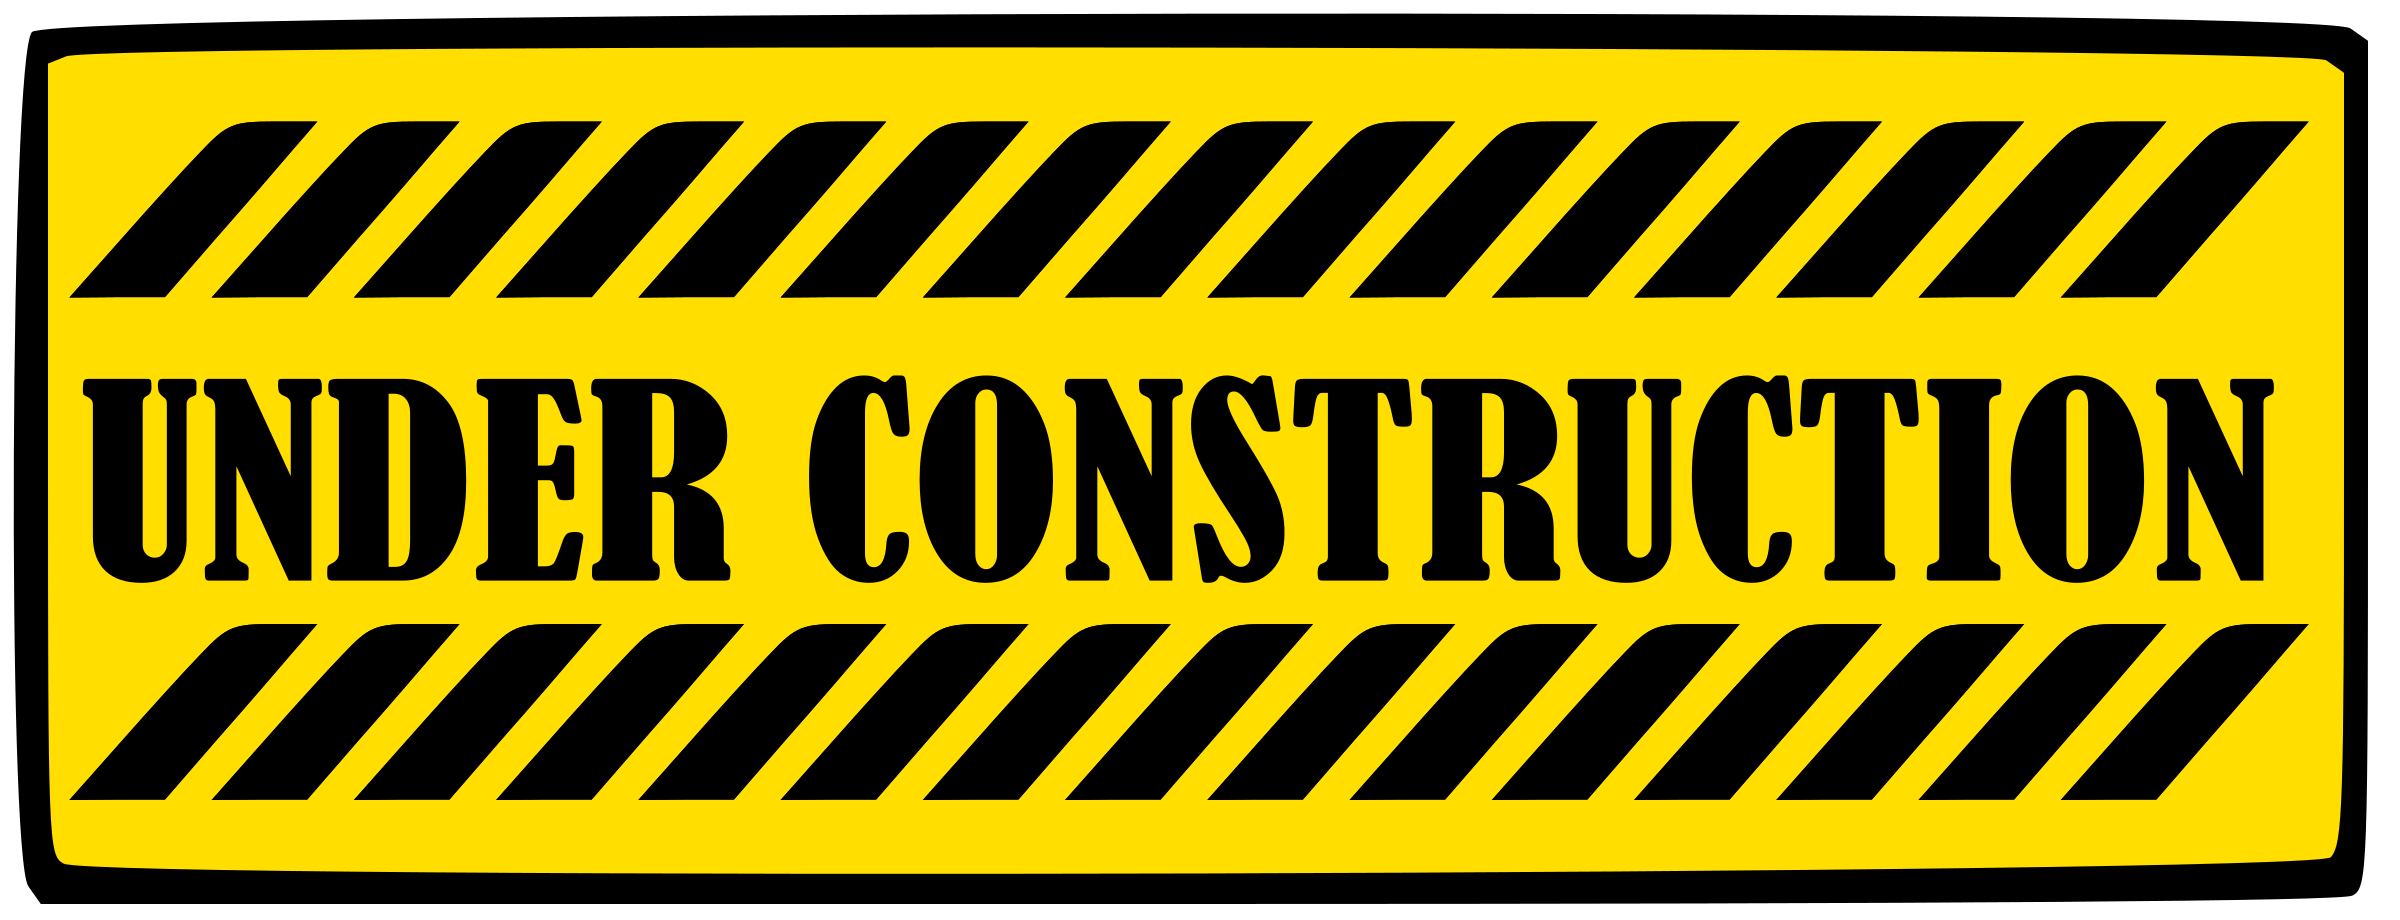 Construction Png Hd - Under Construction PNG HD | PNG All